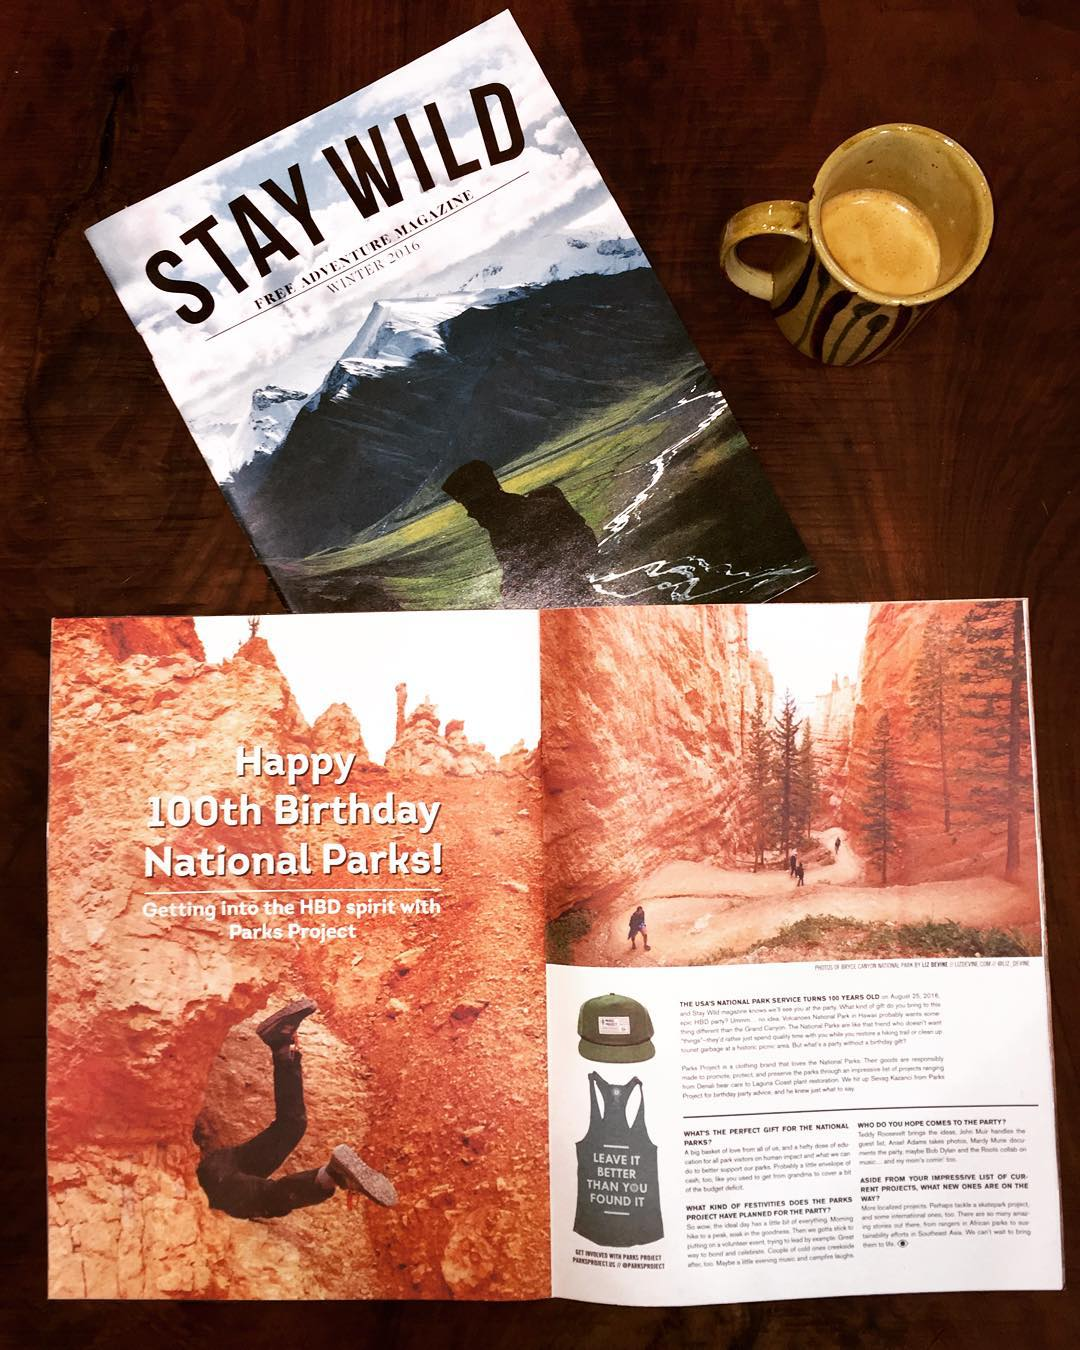 M O R N I N  R E A D Favorite mag @staywildmagazine slid a feature on #radparks in the winter edition. #nationalparkscentennial #leaveitbetterthanyoufoundit #goparks